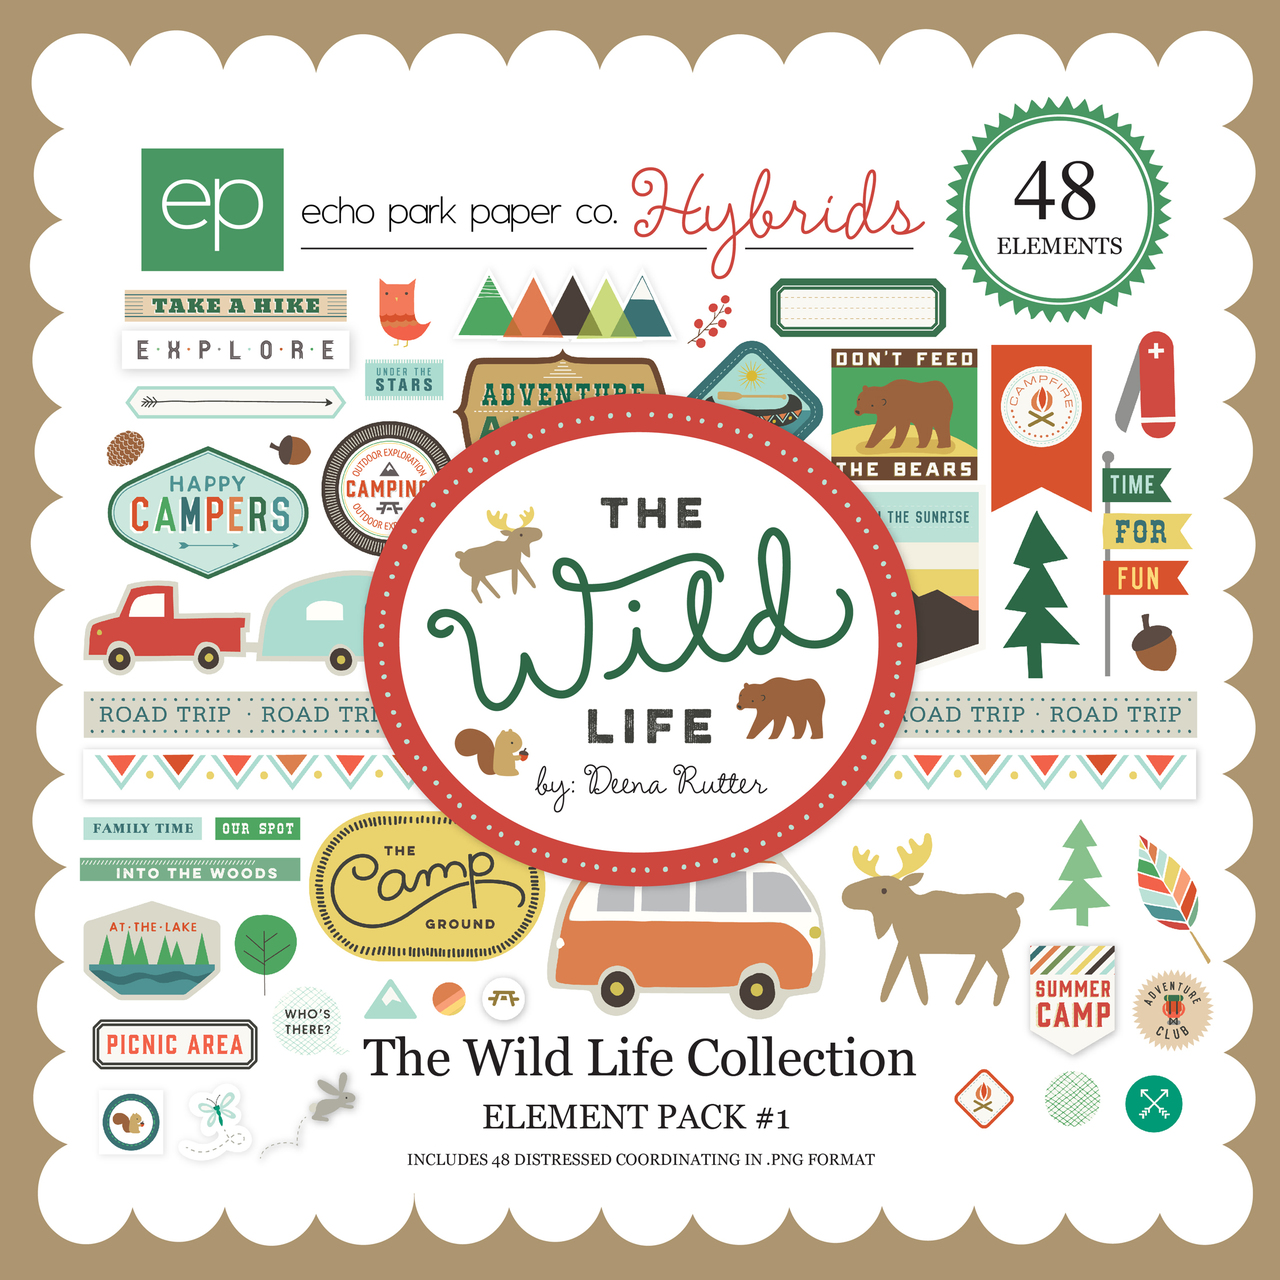 The Wild Life Element Pack #1